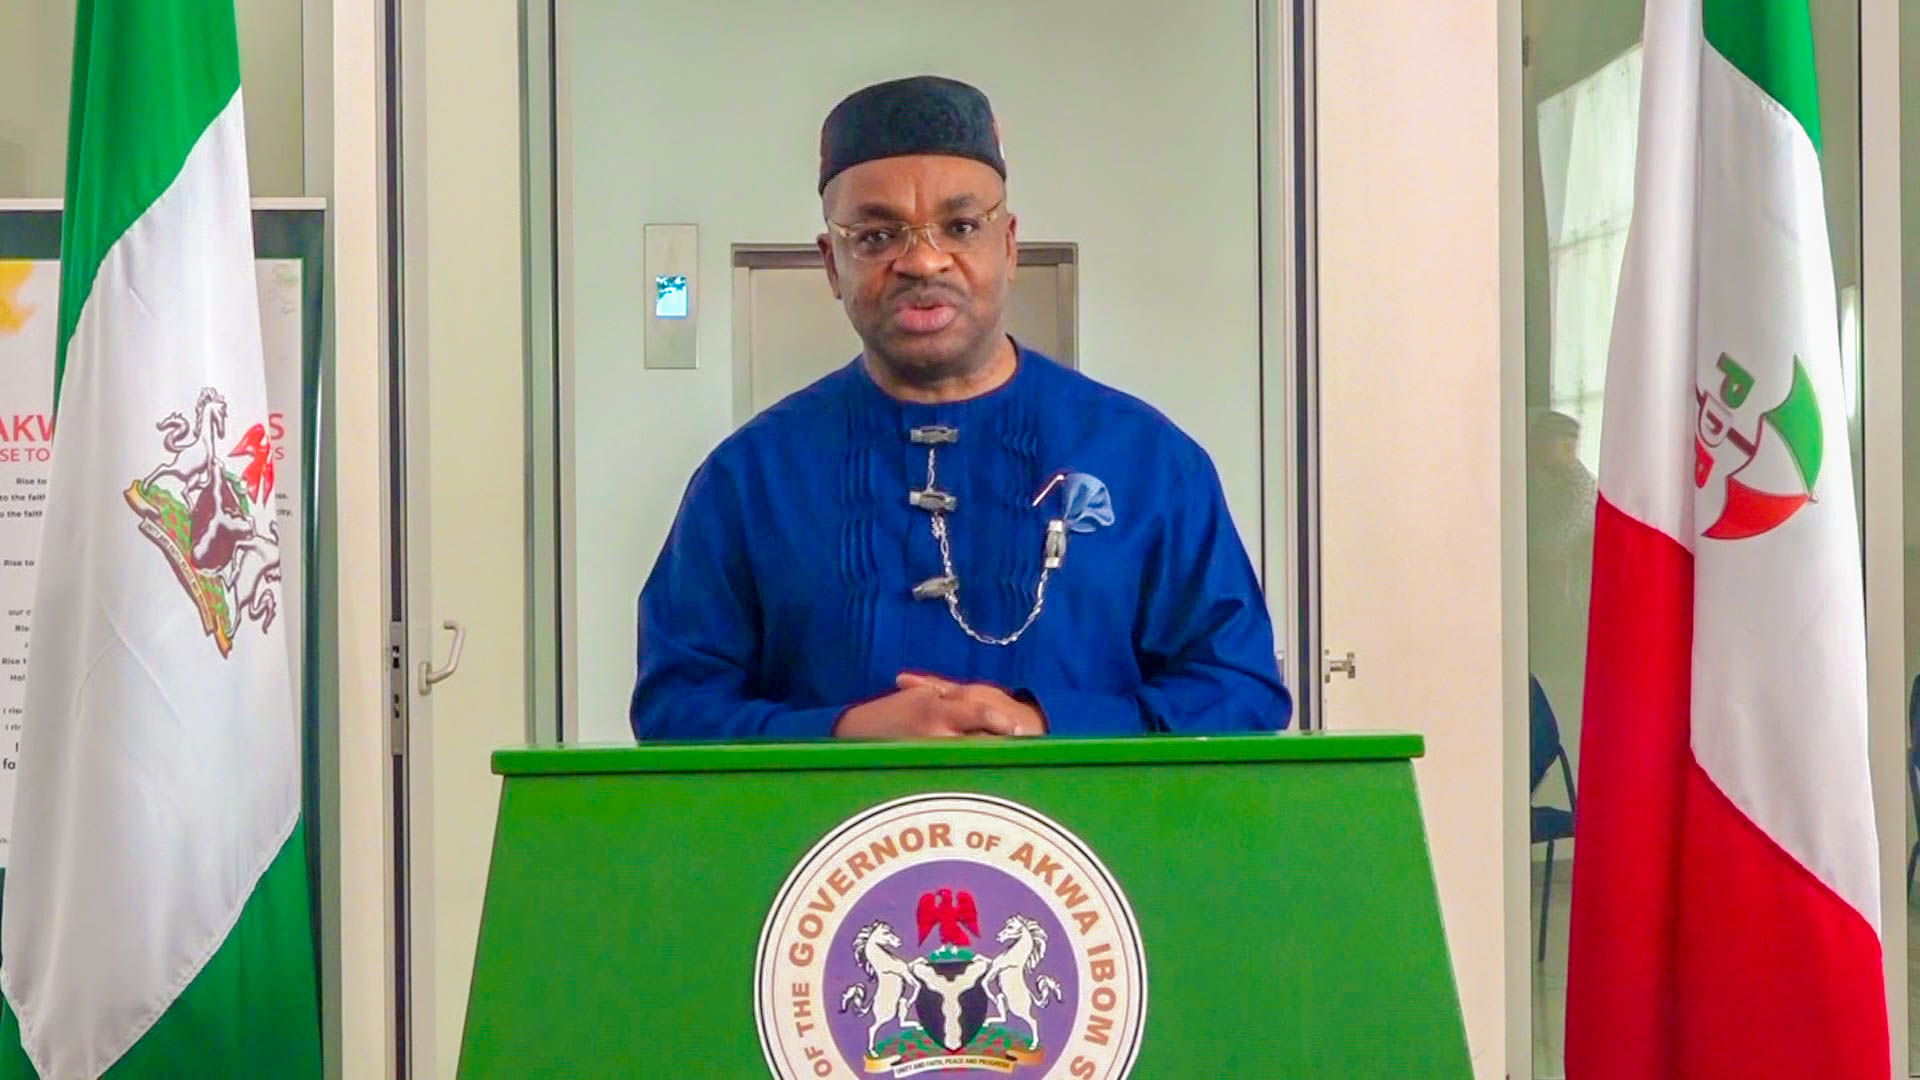 Akwa Ibom governor says he's not joining APC, sponsors of rumour exposed